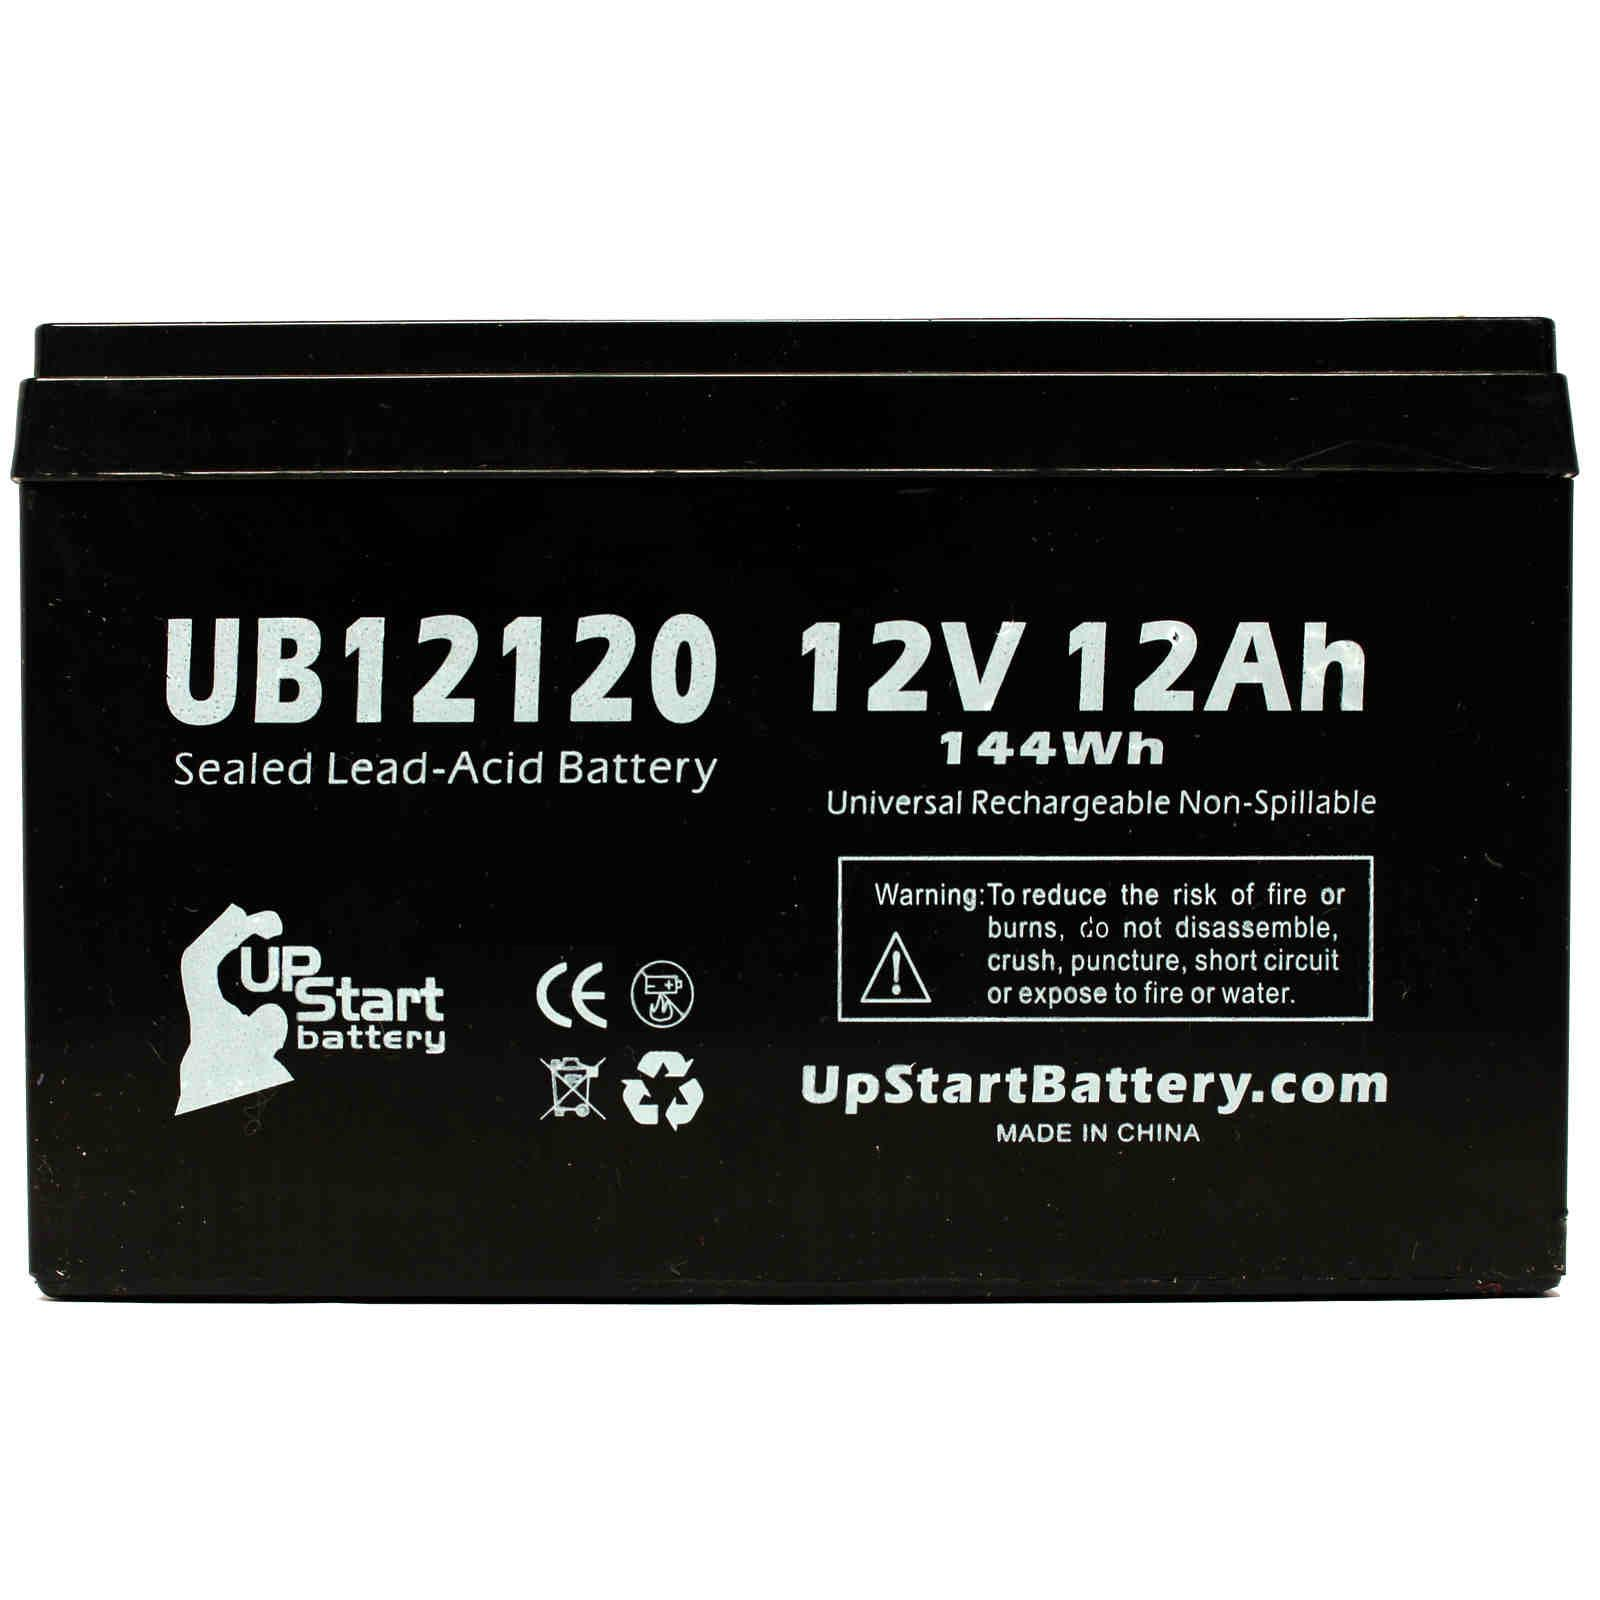 2x Pack - APC BACK-UPS BK650MC Battery Replacement - UB12120 Universal Sealed Lead Acid Battery (12V, 12Ah, 12000mAh, F1 Terminal, AGM, SLA) - Includes 4 F1 to F2 Terminal Adapters - image 3 of 4